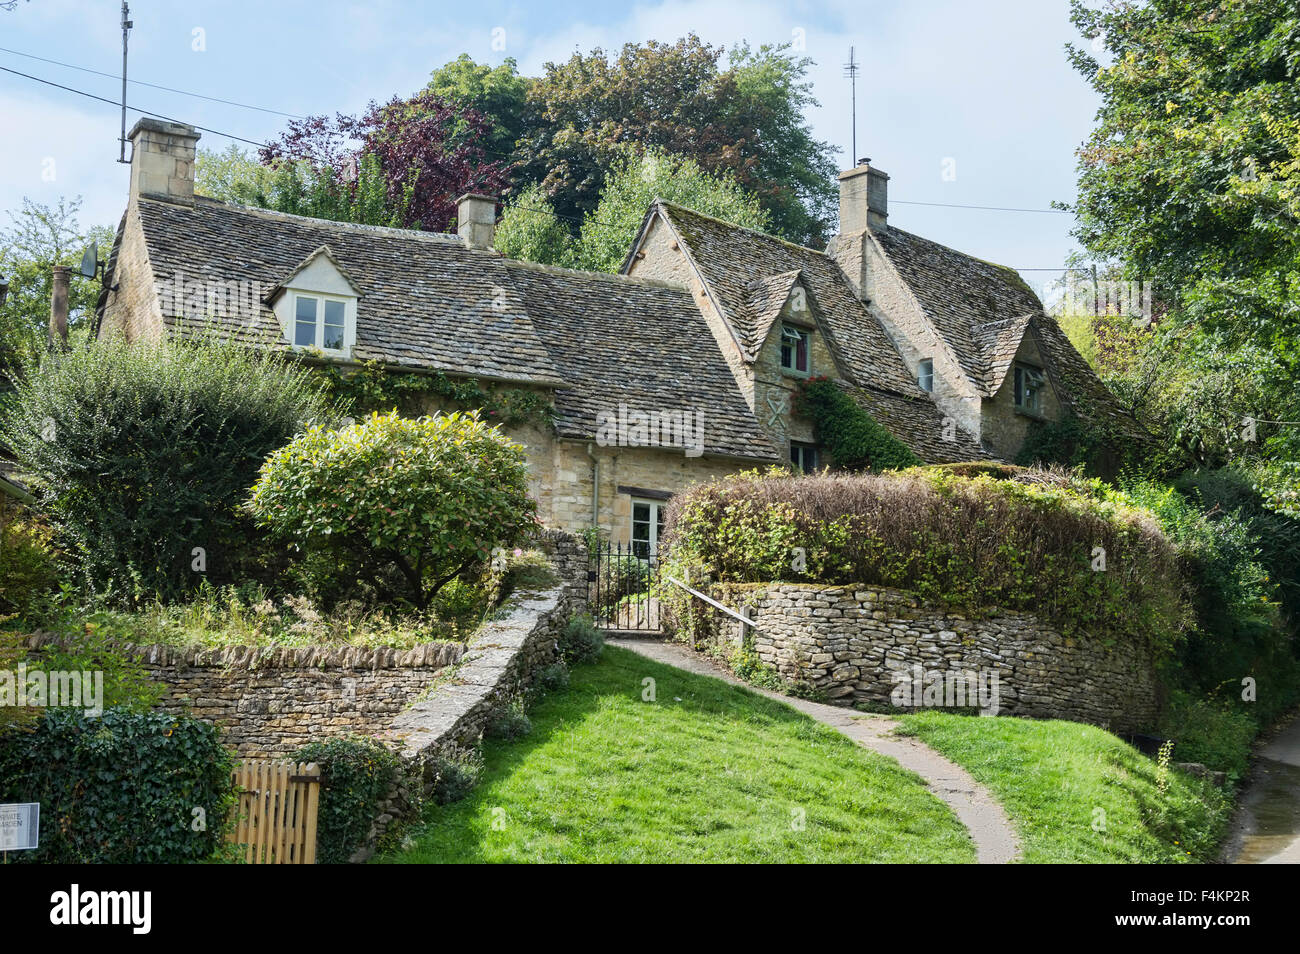 bibury village photos bibury village images alamy. Black Bedroom Furniture Sets. Home Design Ideas